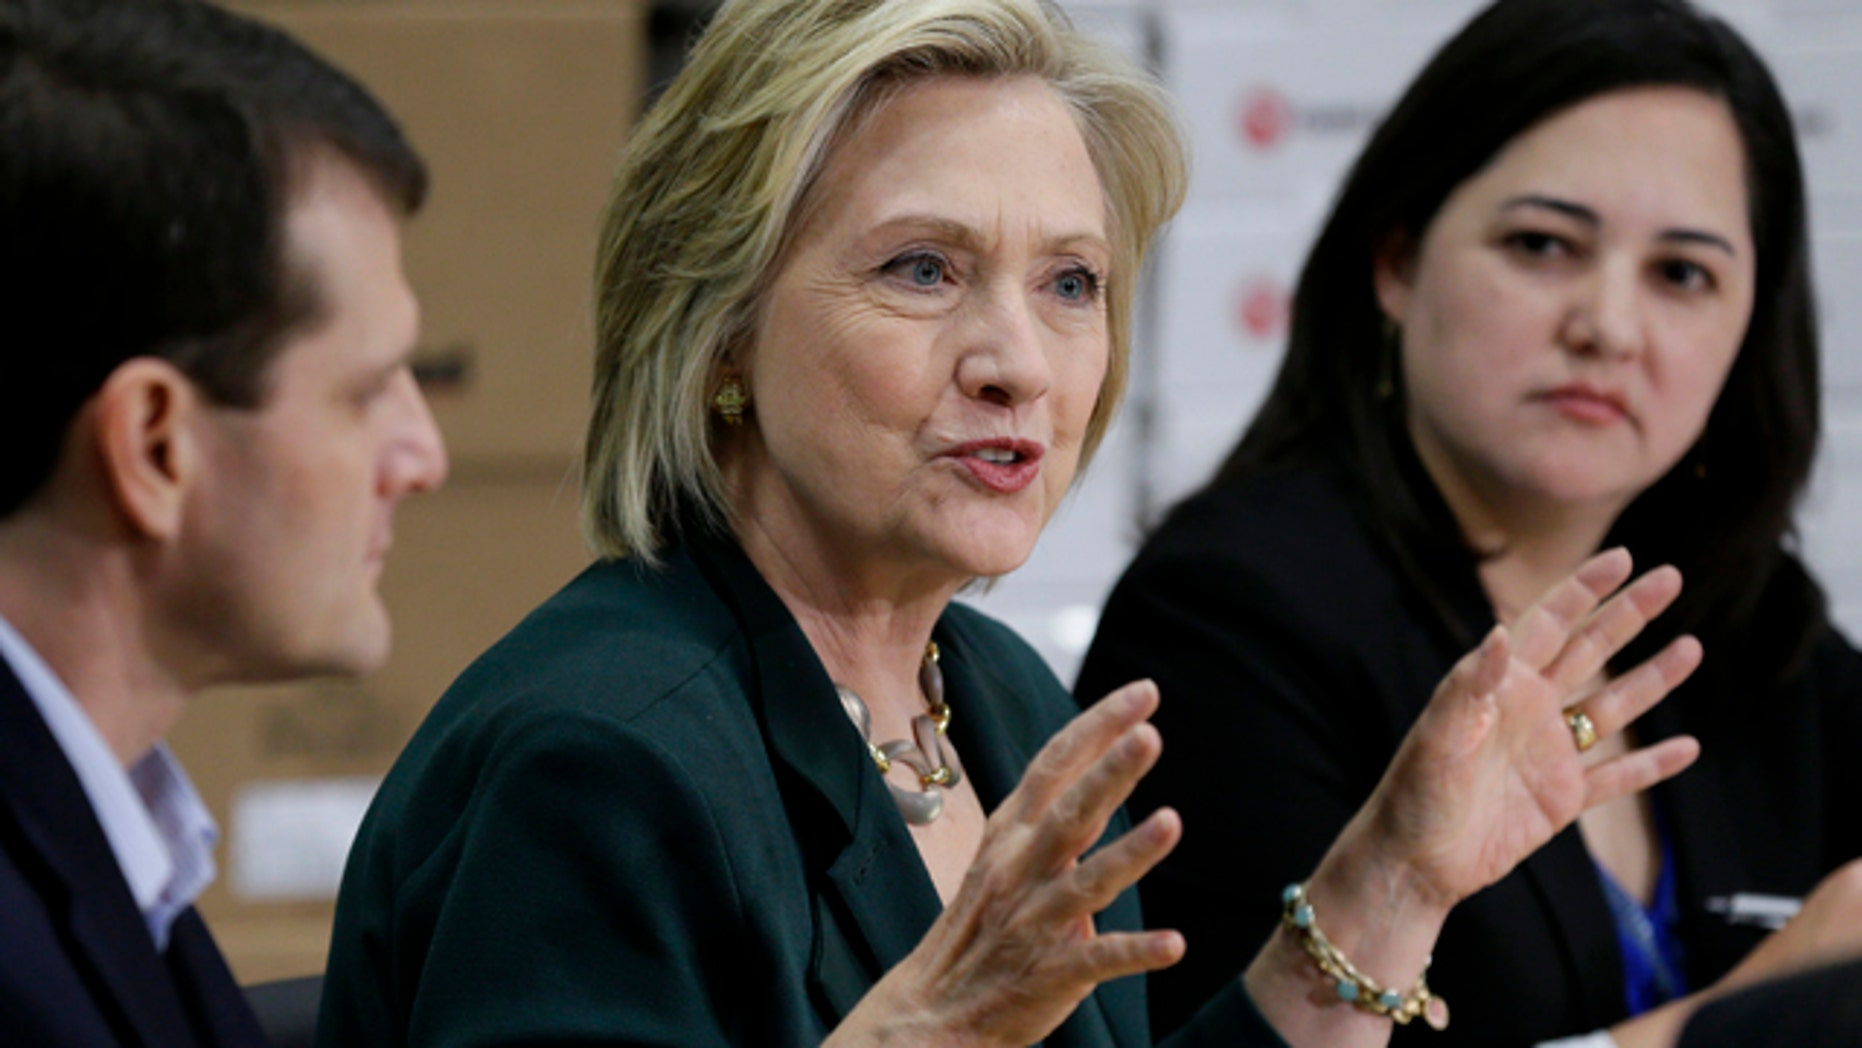 April 15, 2015: Democratic presidential candidate Hillary Rodham Clinton, center, speaks during a small business roundtable in Norwalk, Iowa. (AP Photo/Charlie Neibergall)